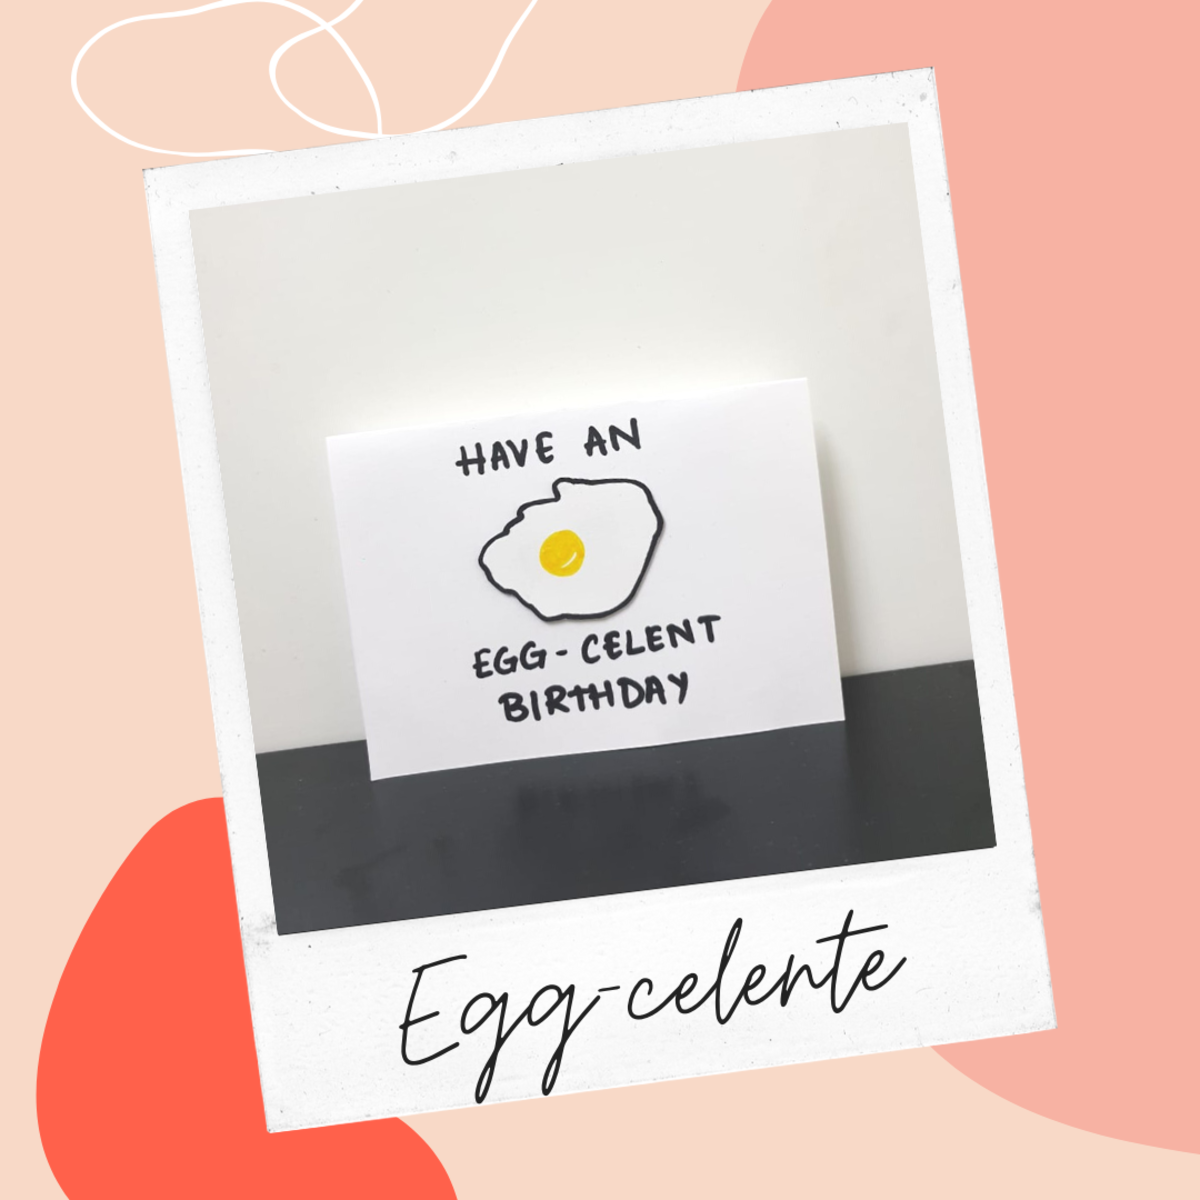 Egg-celent Birthday Greeting Card Idea